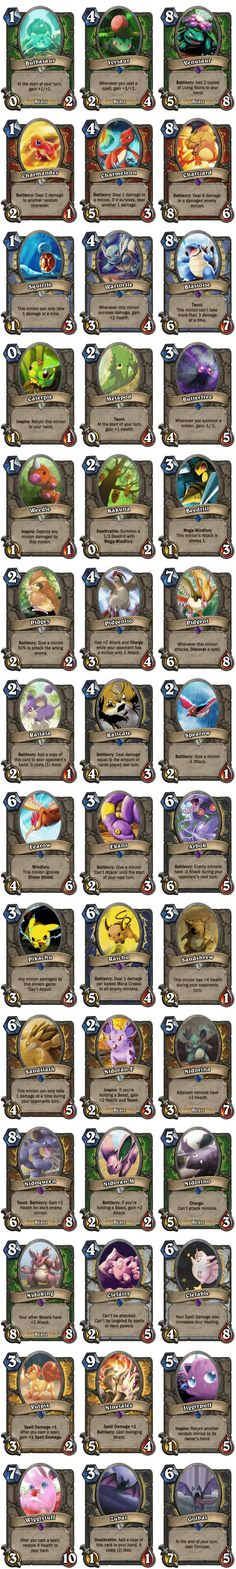 The first 42 Pokemon as Hearthstone cards. Enjoy!